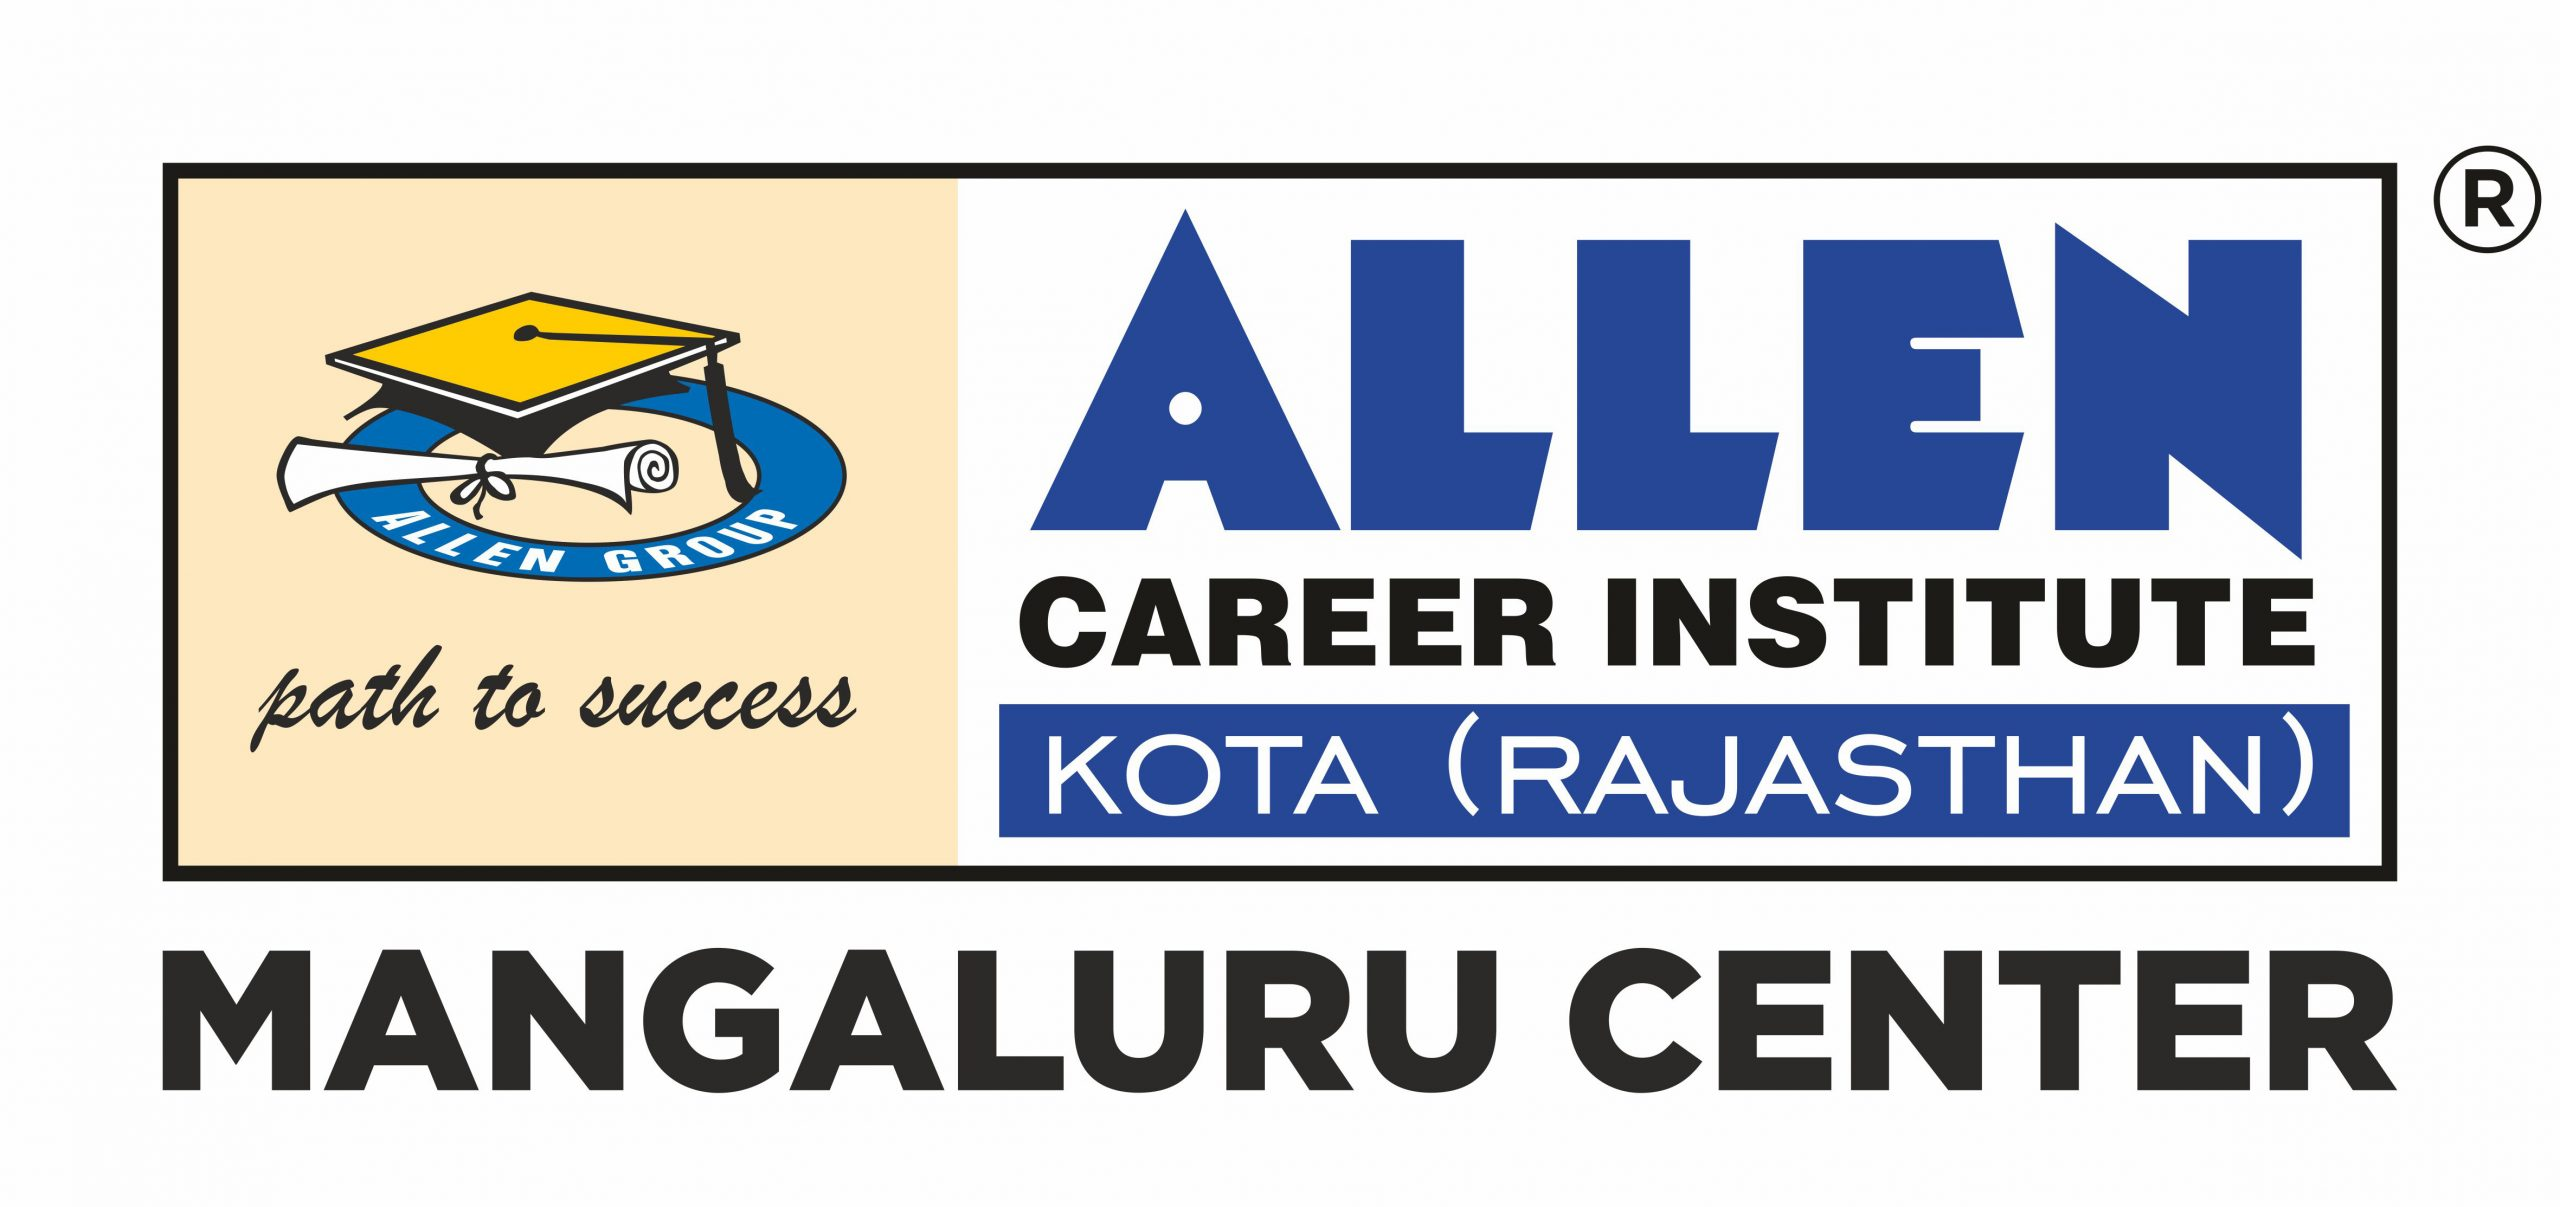 Allen Career Institute, KOTA RAJASTHAN